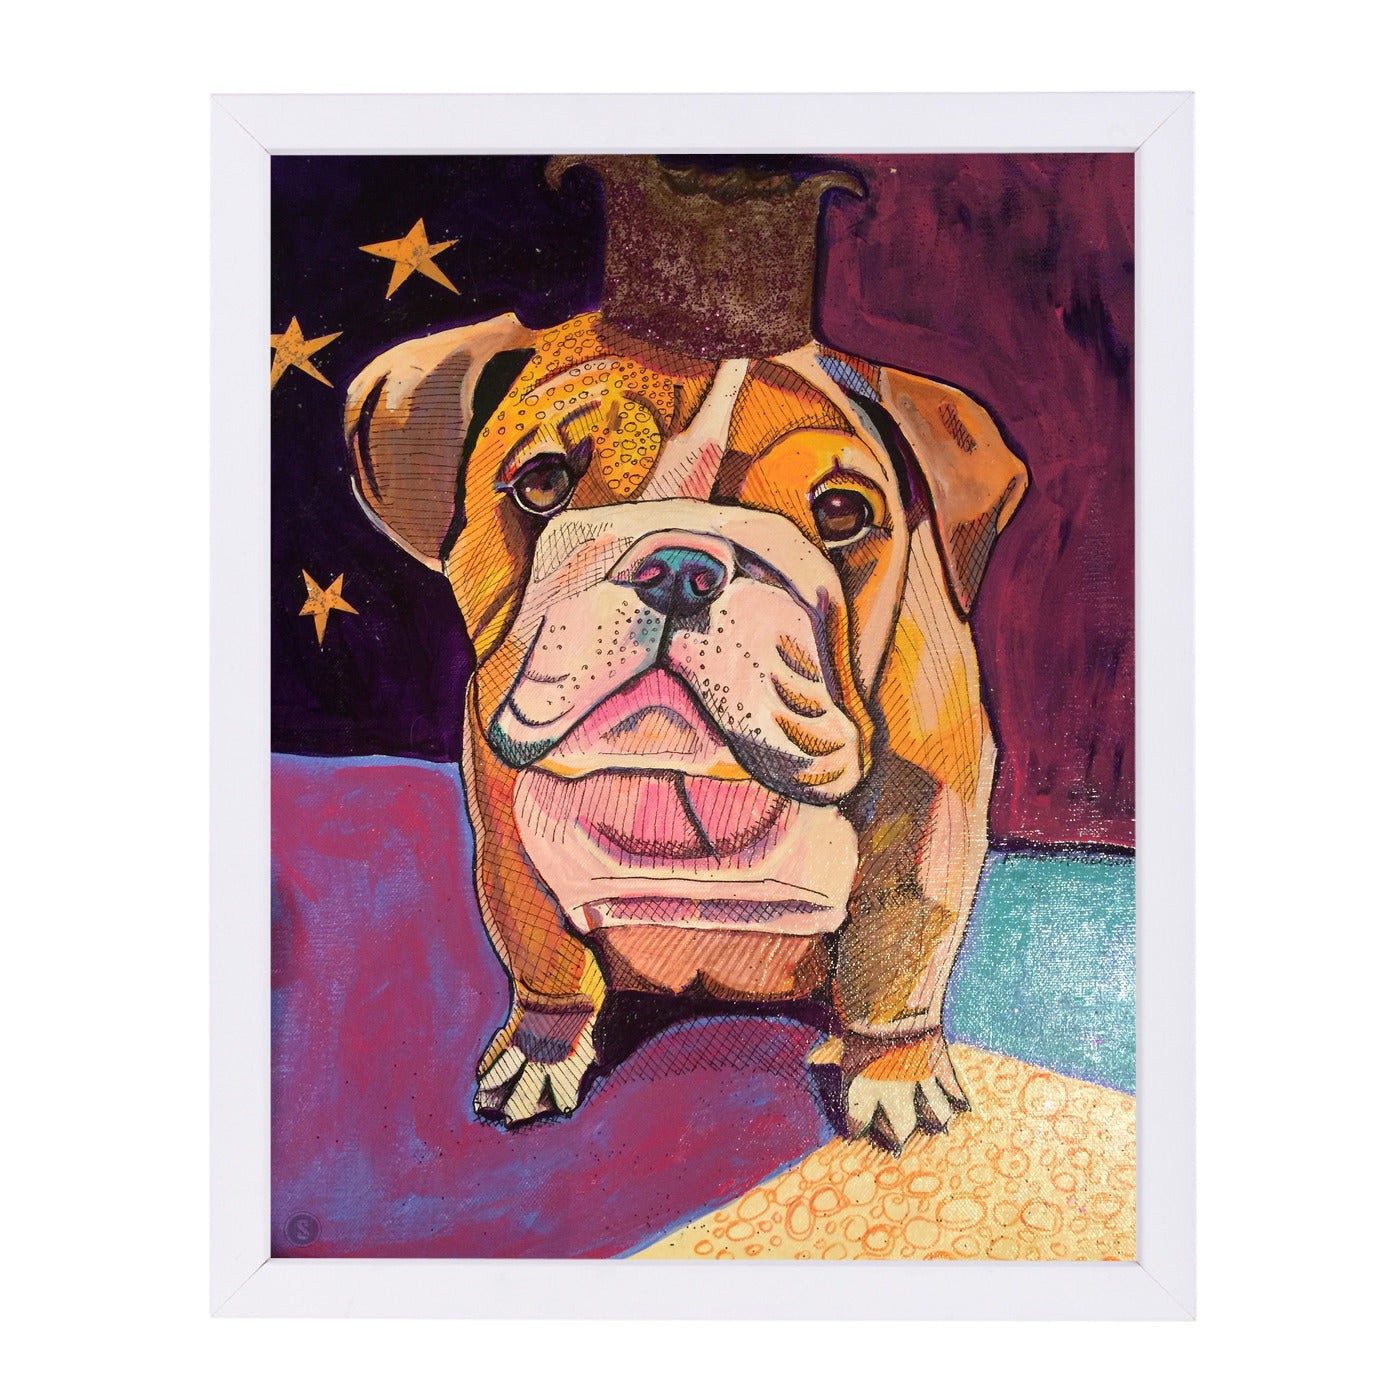 English Bull Dog Jpg by Solveig Studio Framed Print - Americanflat